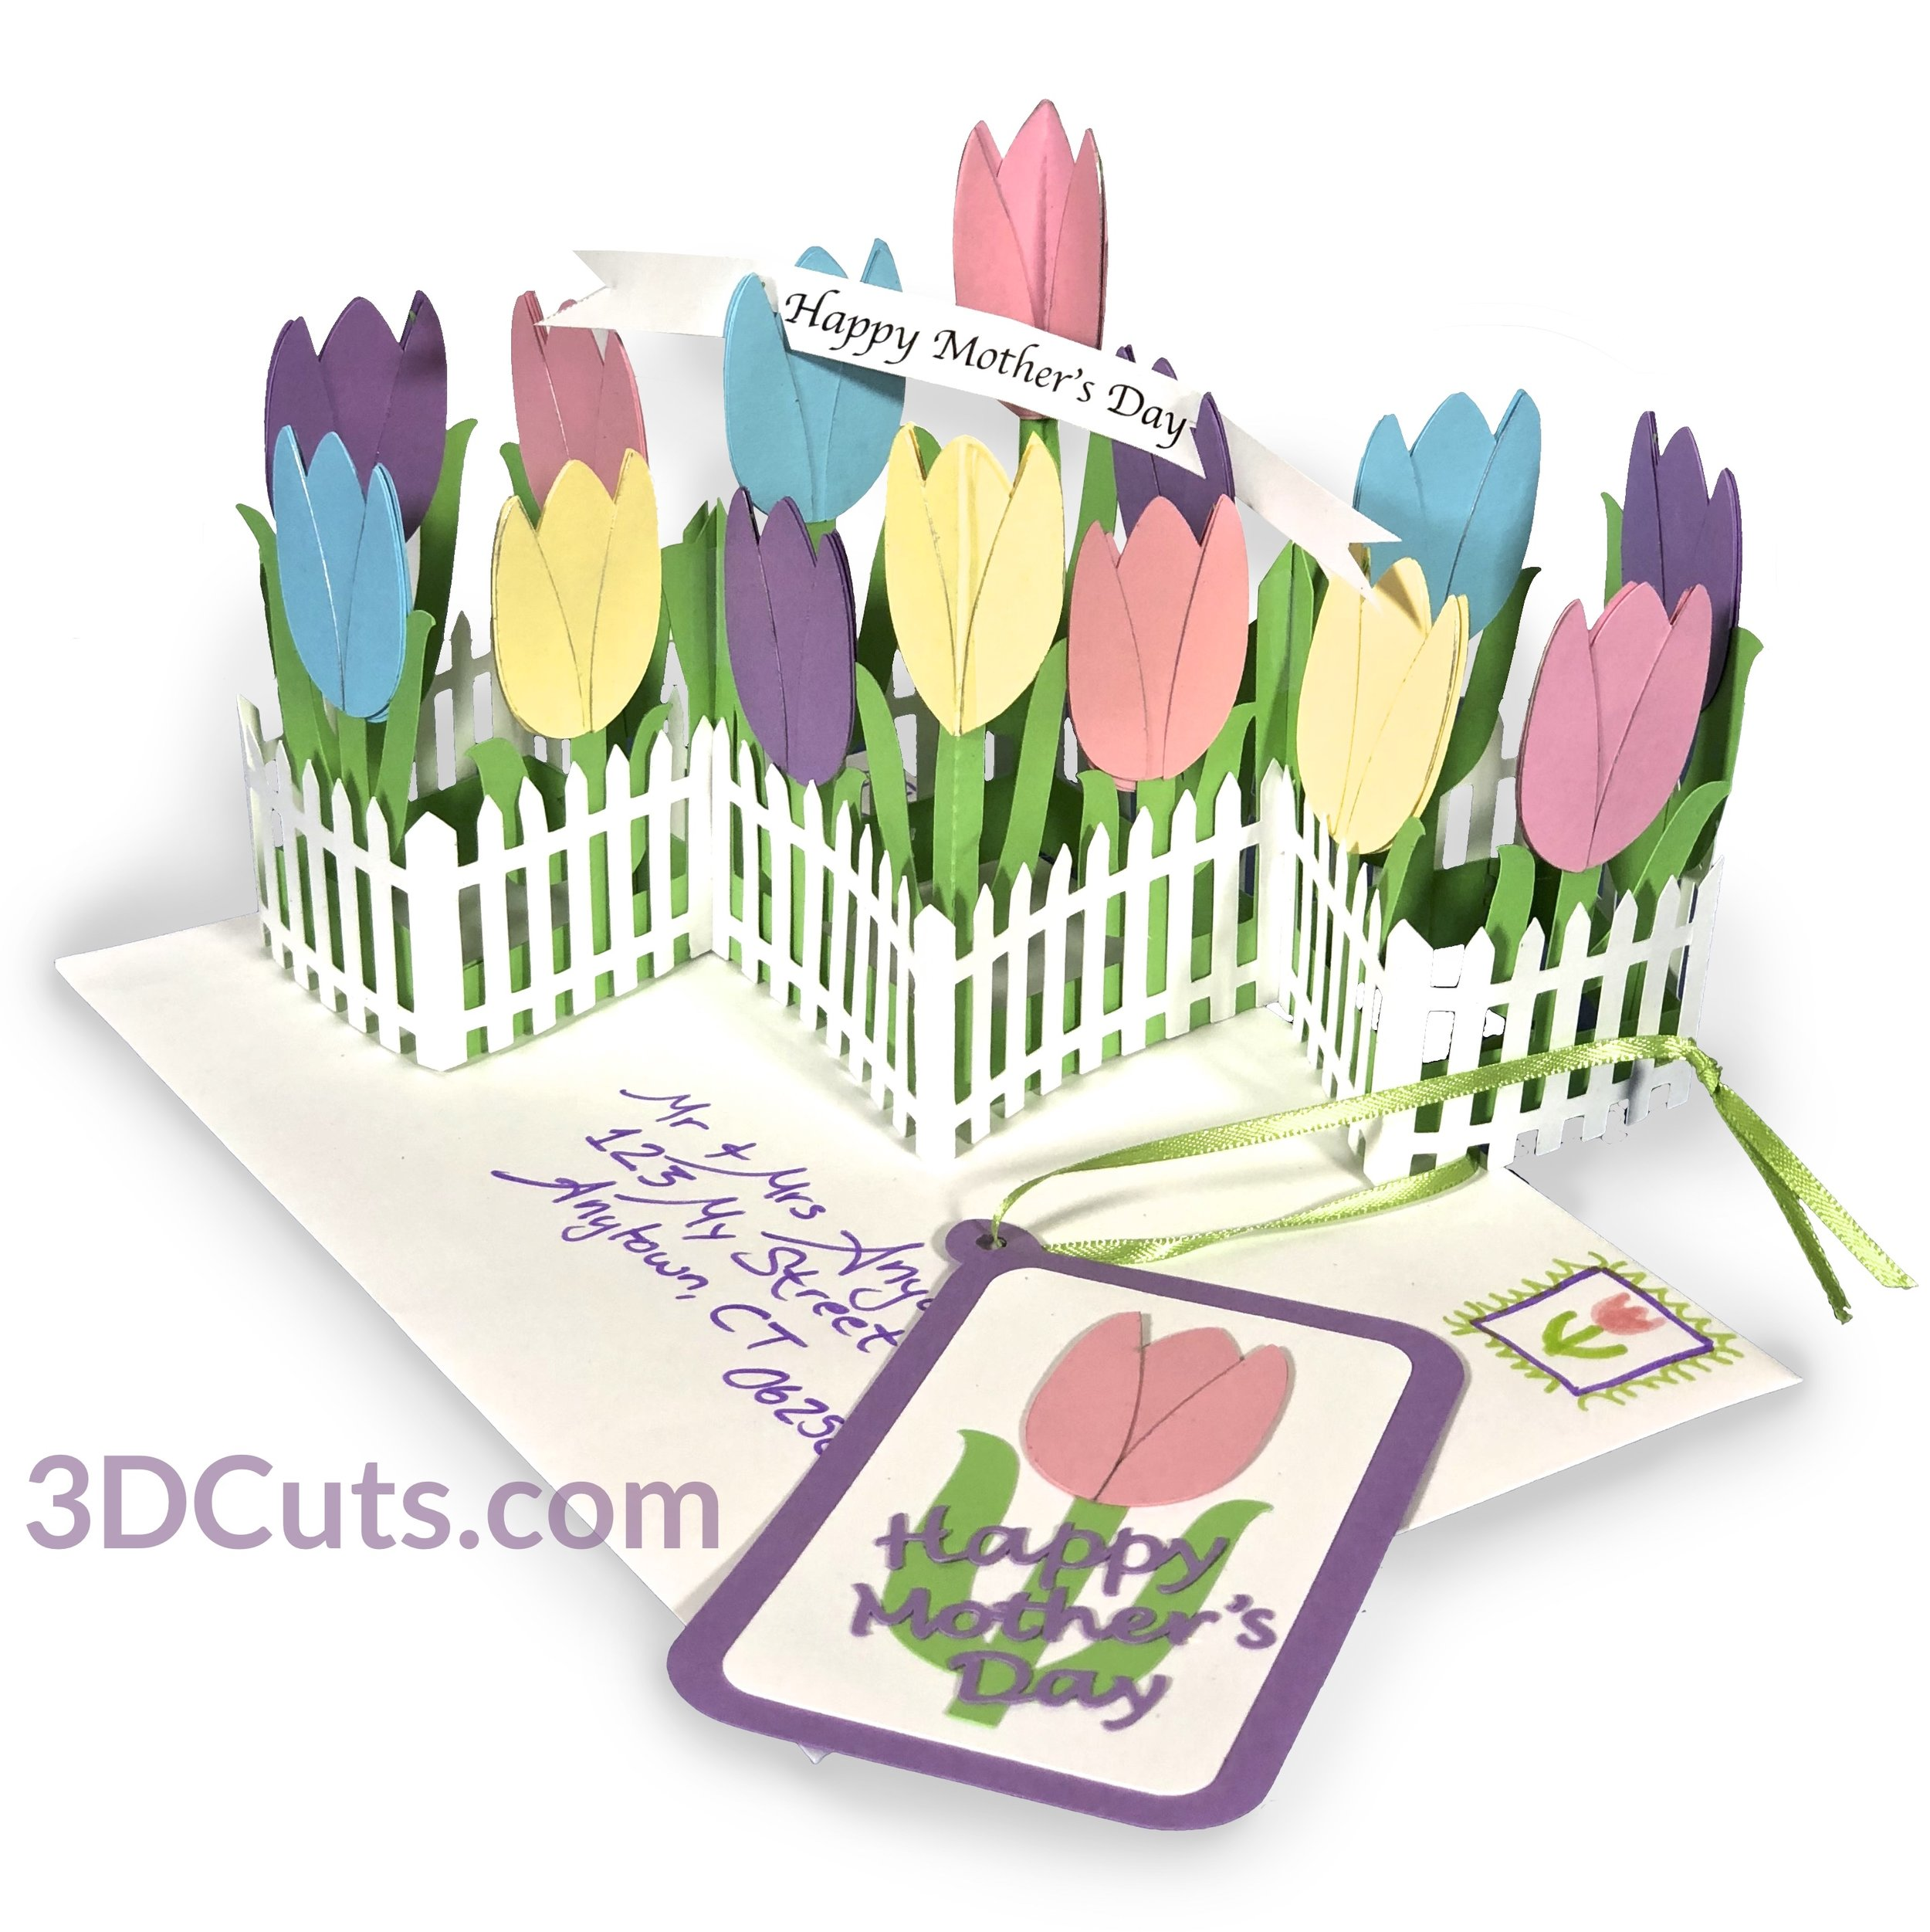 Zig Zag Tulip Card for Easter, Spring or Mother's Day, 3DCuts.com, Marji Roy, 3D cutting files in .svg, .dxf, and .pdf formats for use with Silhouette, Cricut and other cutting machines, paper crafting files